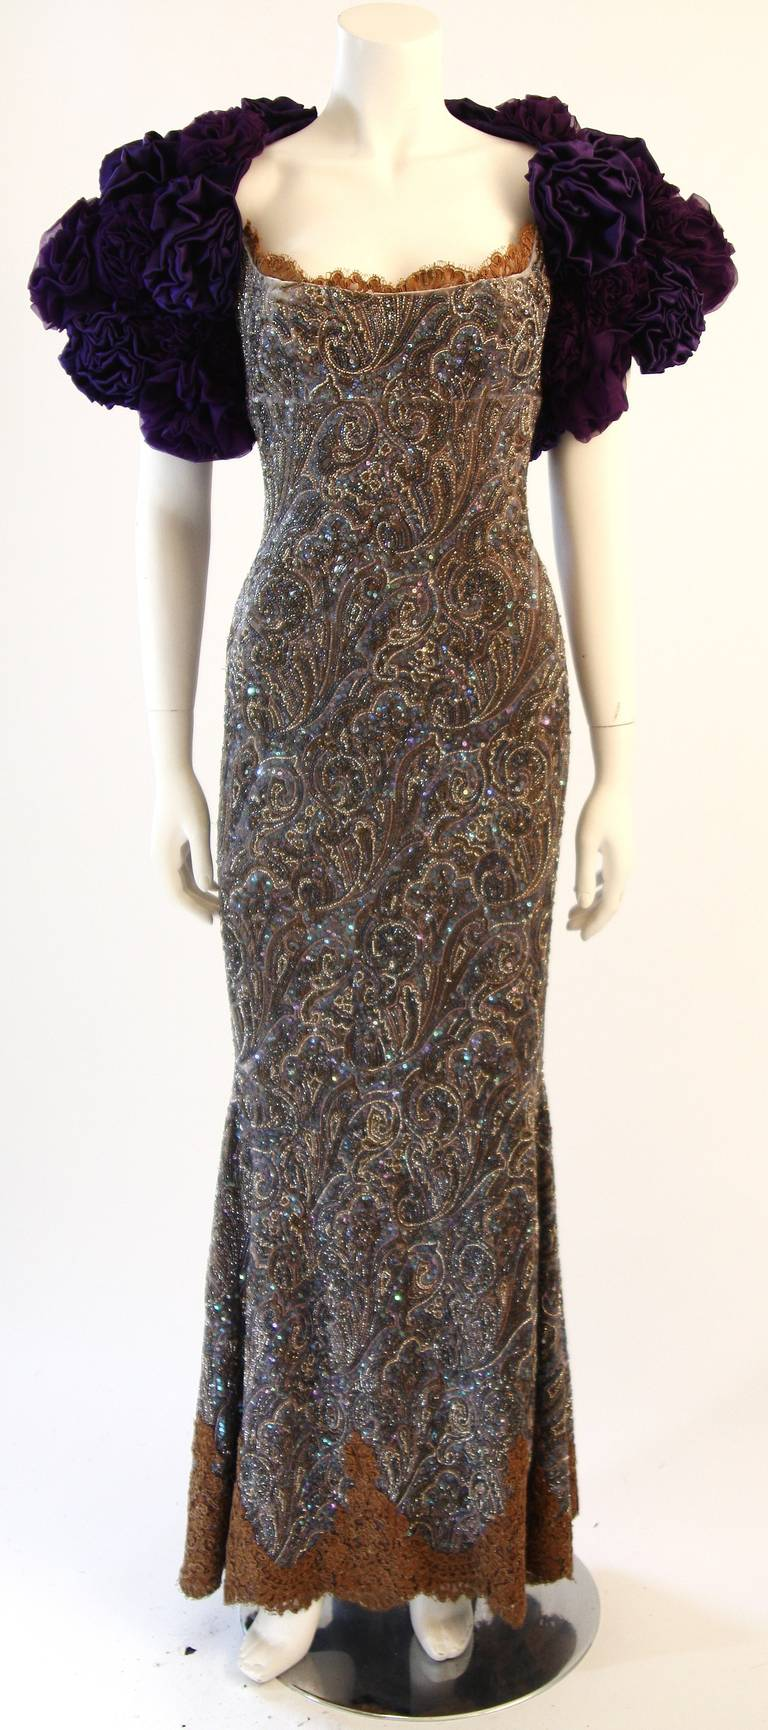 Black RANDI RAHM COUTURE Purple Sequin Hand Beaded Velvet Paisley Gown Size 4-6 For Sale